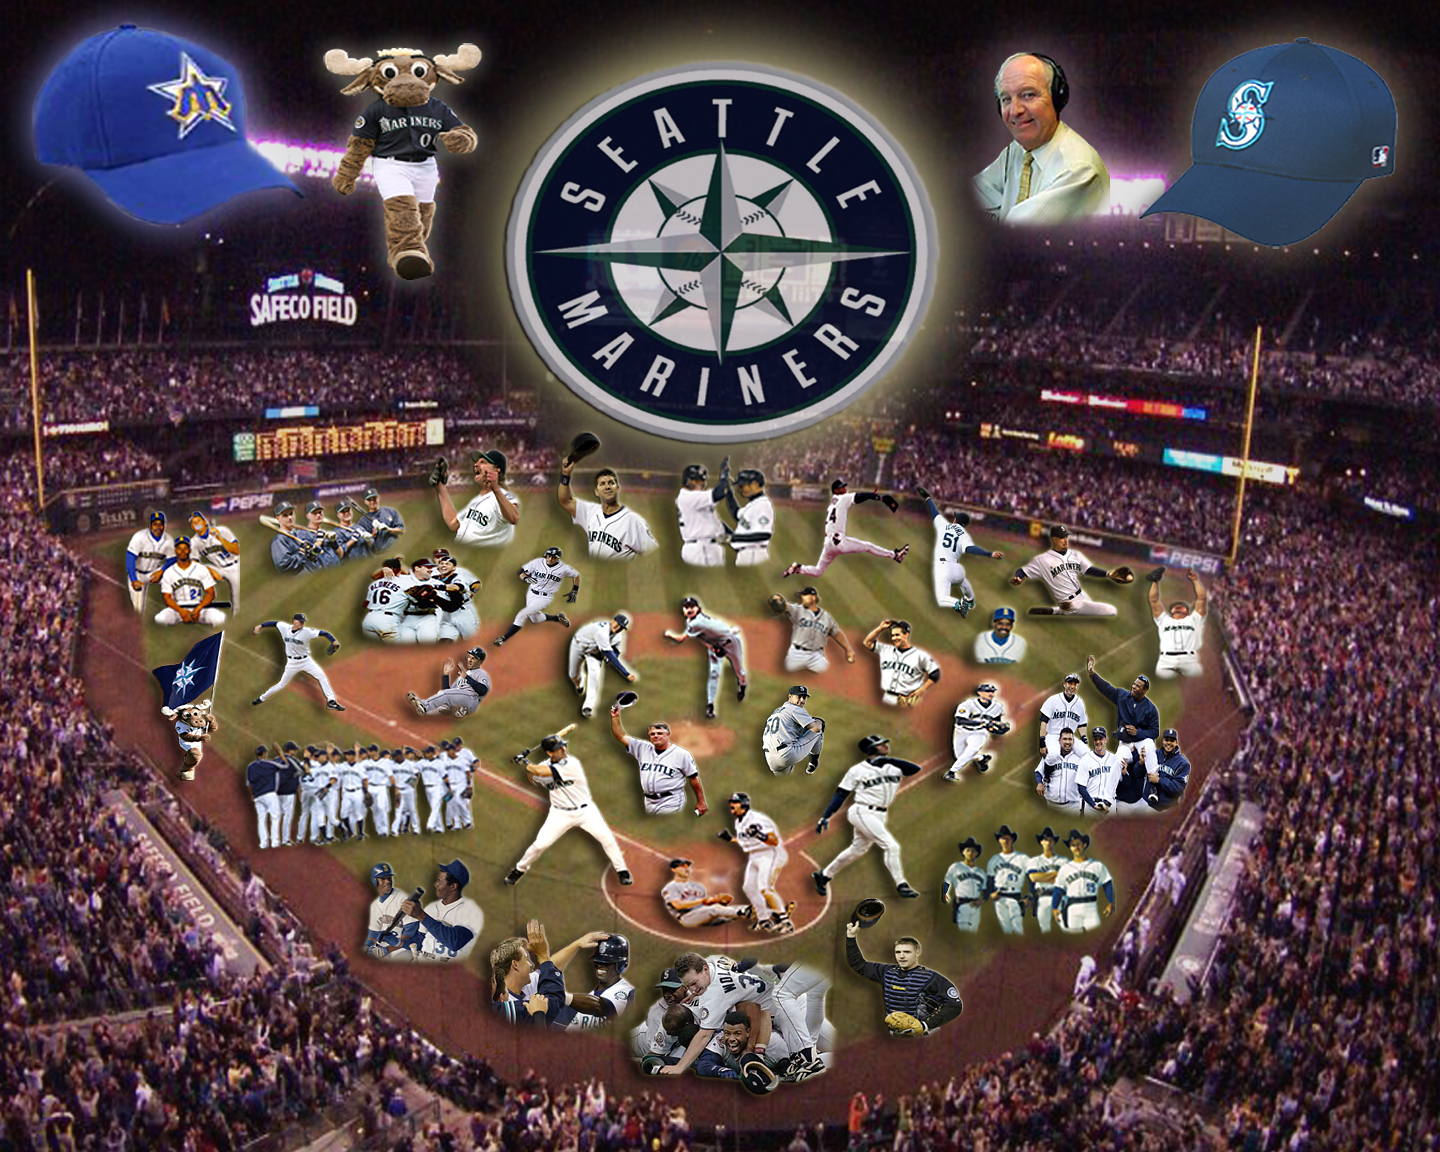 Seattle Mariners Wallpaper 16   1440 X 1152 stmednet 1440x1152